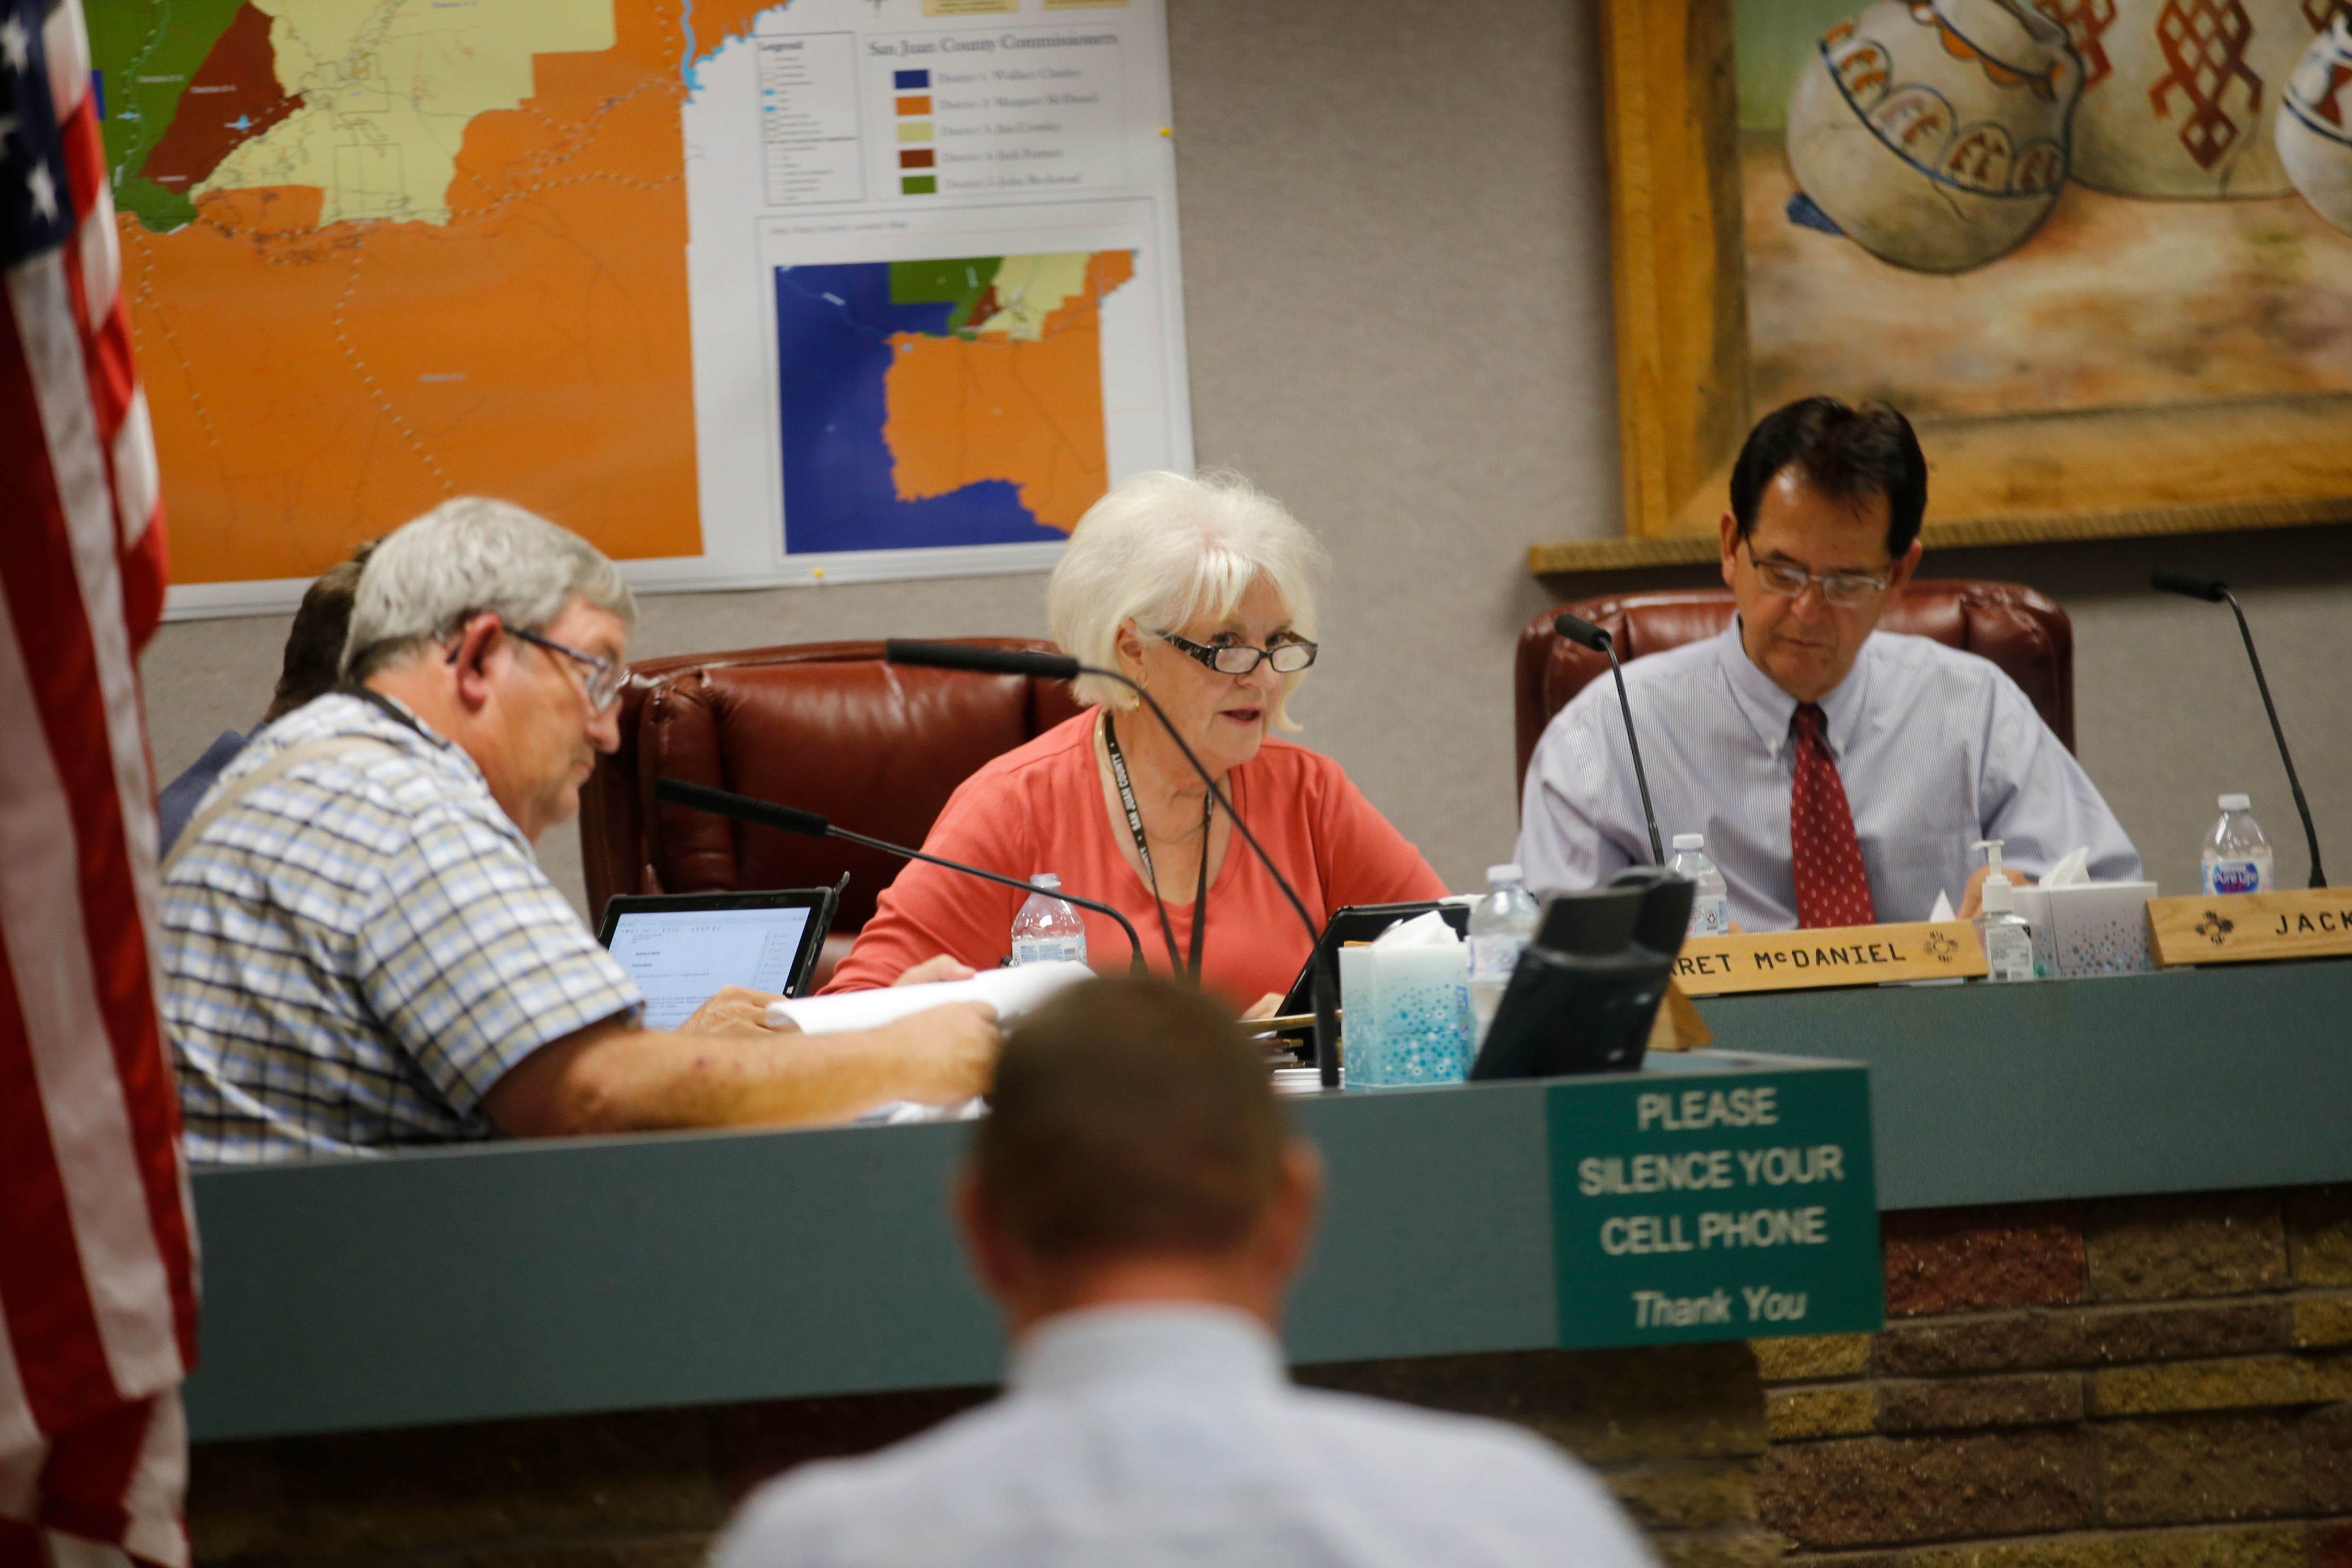 Former San Juan County Commissioner Margaret McDaniel speaks during a commission meeting on Sept. 5, 2018 at the county administration building in Aztec. McDaniel died on April 21, 2020.